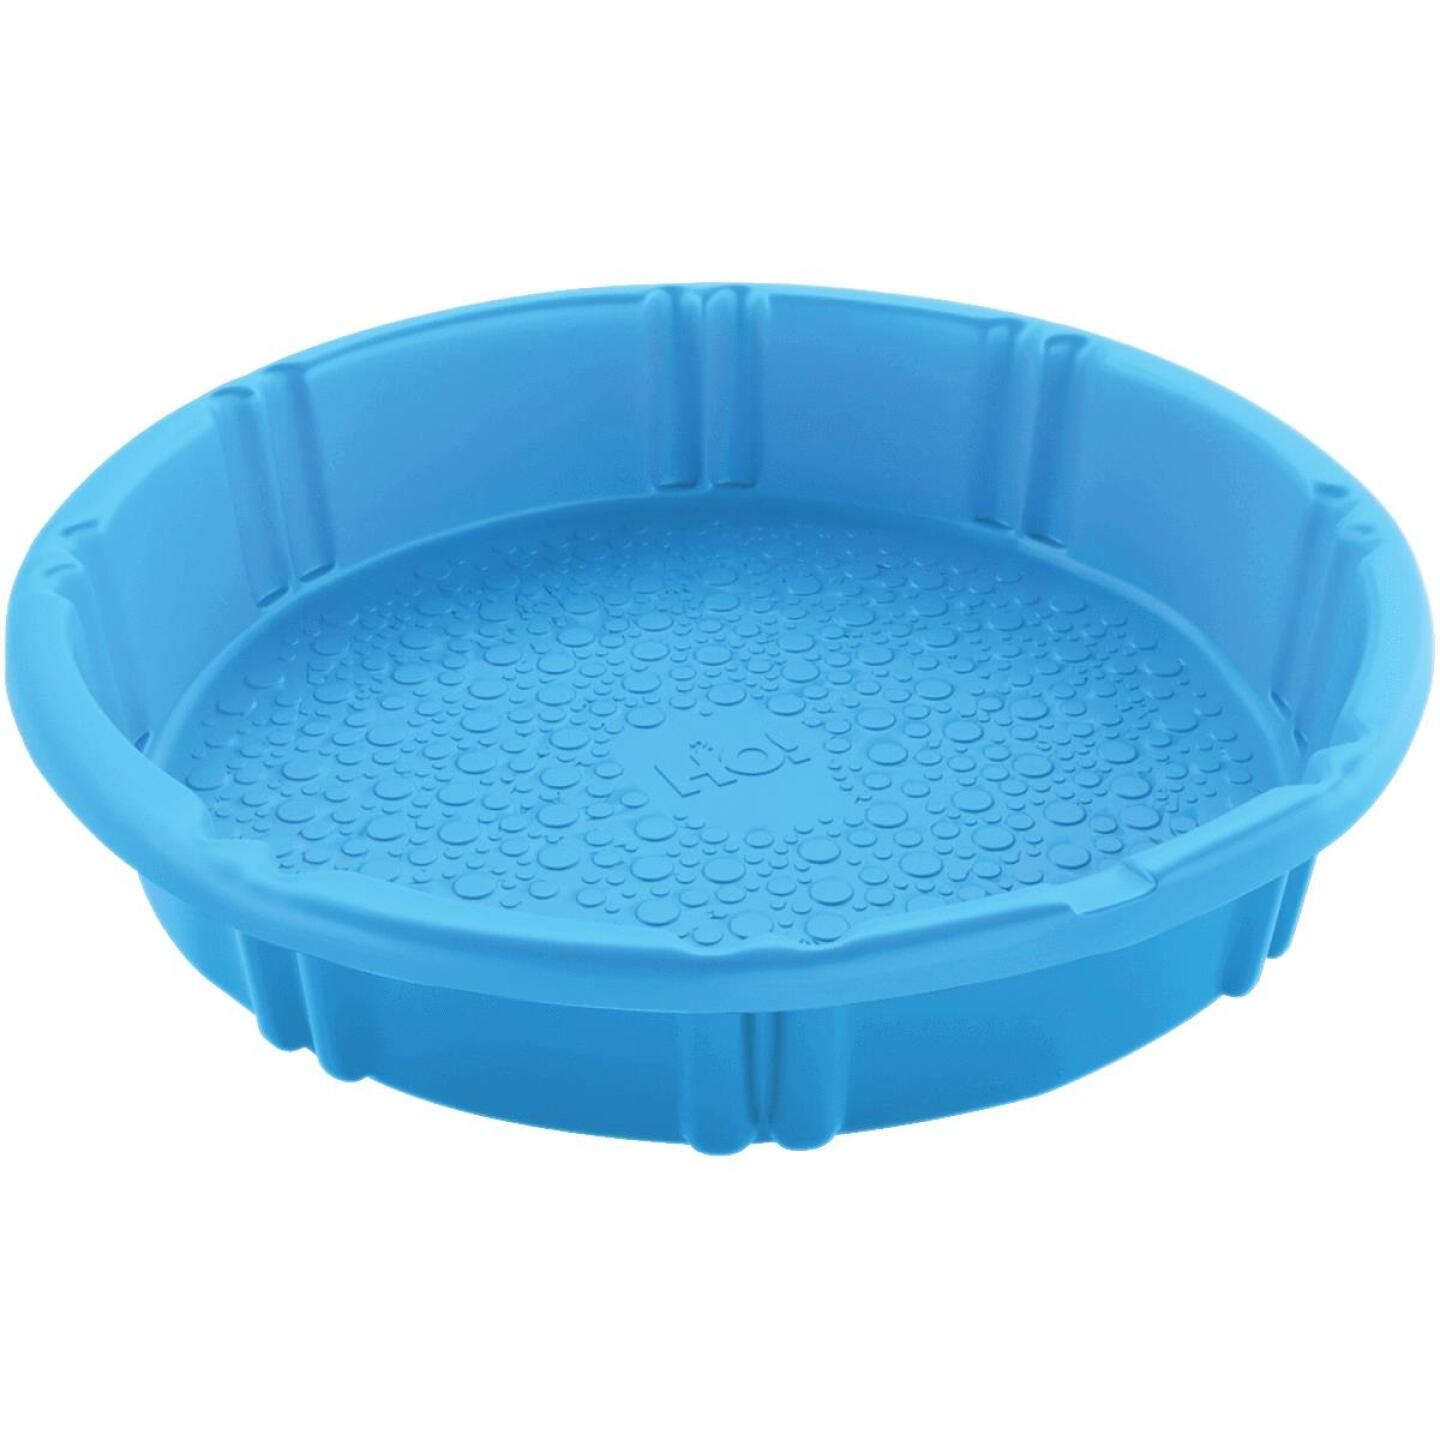 H2O 12 In. D. x 60 In. Dia. Blue Polyethylene Econo Pool Image 1